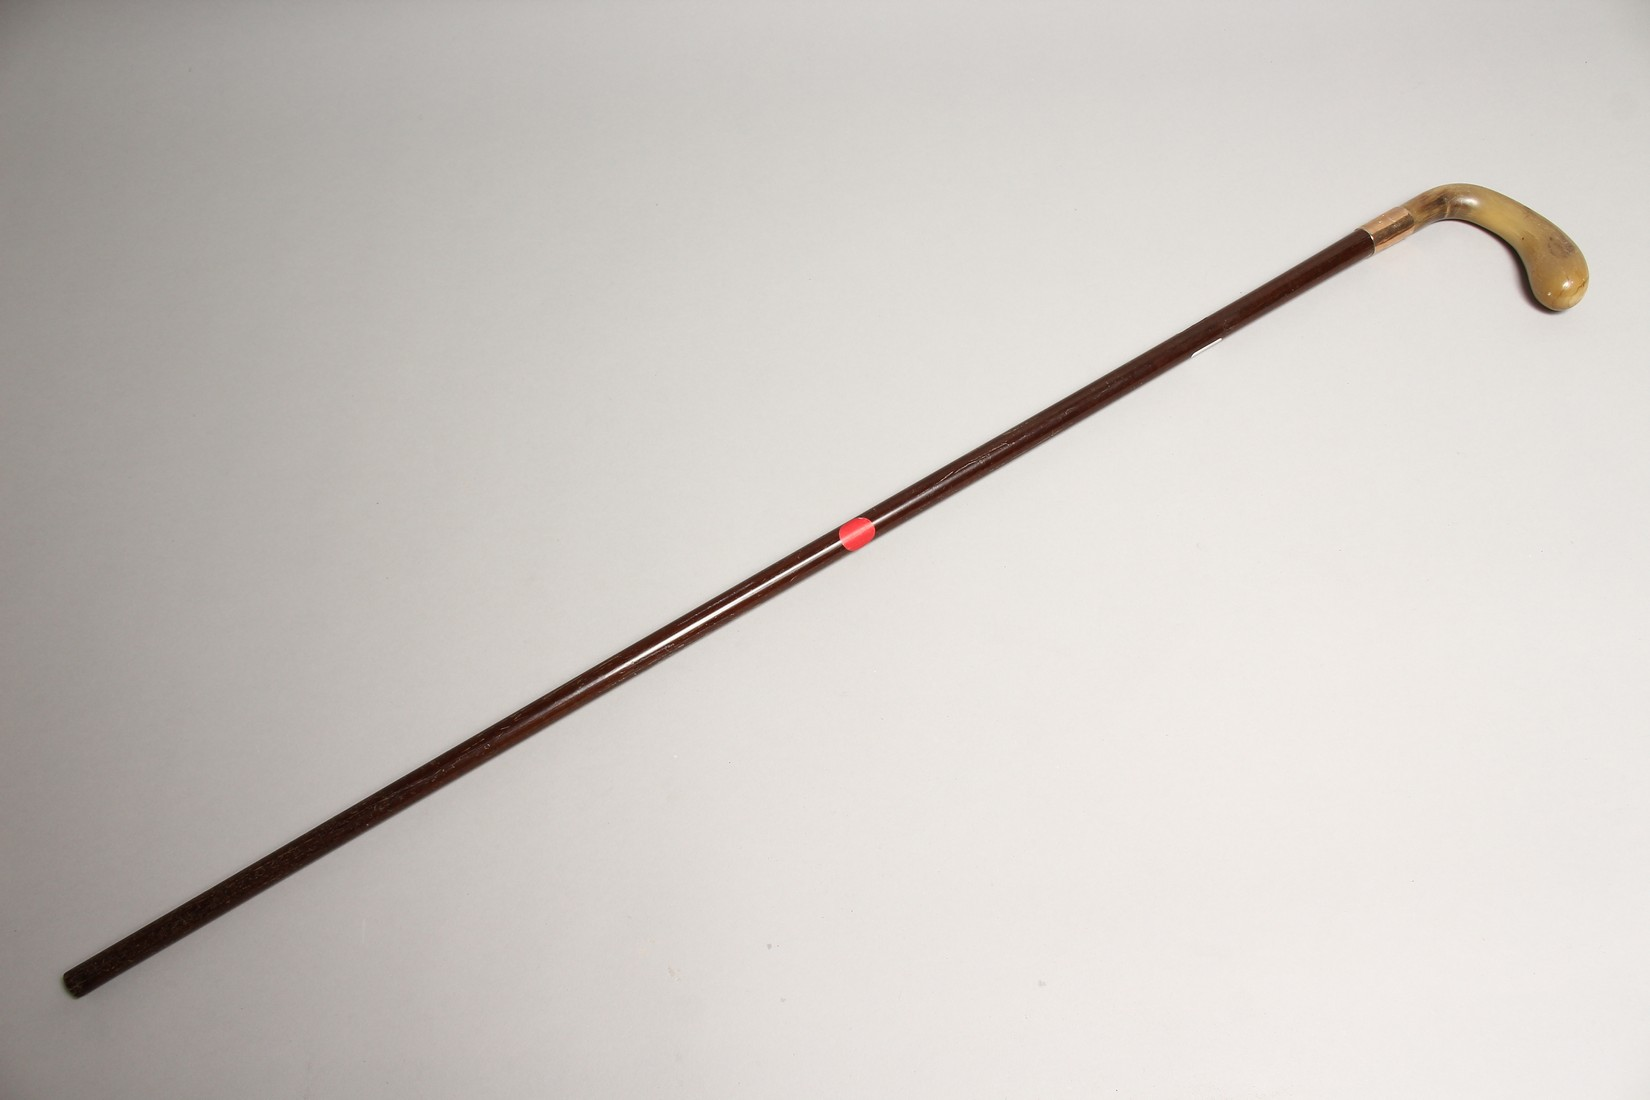 A VICTORIAN RHINO HANDLE WALKING STICK with gold band 2ft 11ins long - Image 10 of 10